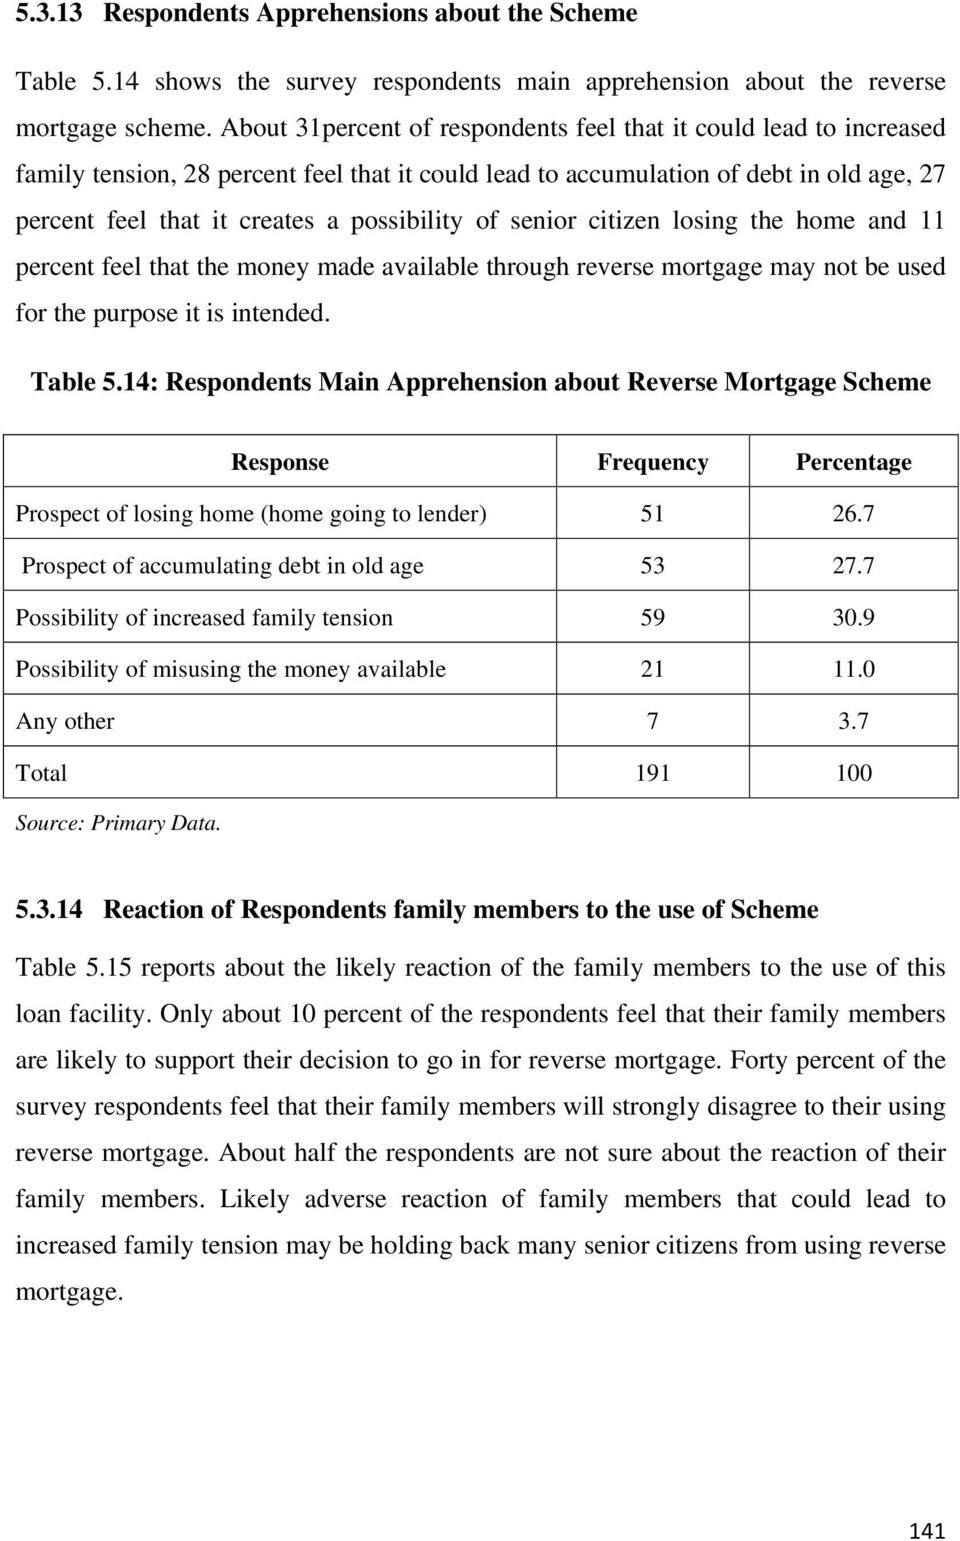 possibility of senior citizen losing the home and 11 percent feel that the money made available through reverse mortgage may not be used for the purpose it is intended. Table 5.